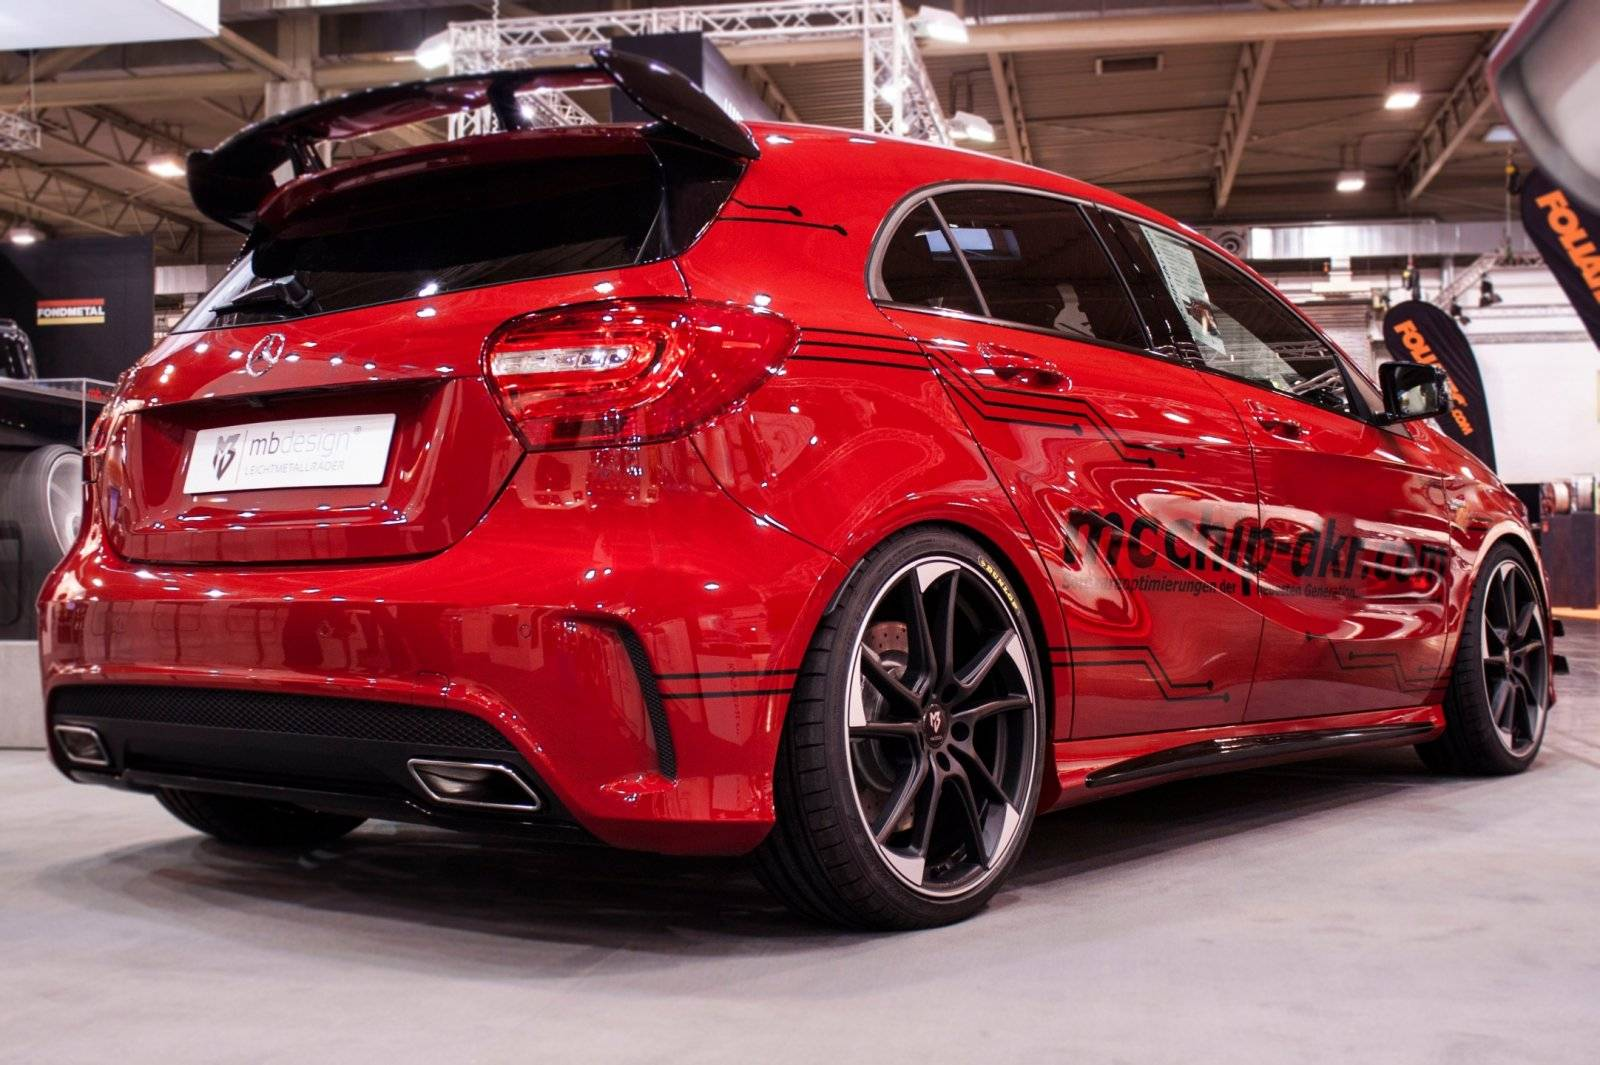 mercedes a45 amg naar 450 pk gechipt tuning styling. Black Bedroom Furniture Sets. Home Design Ideas